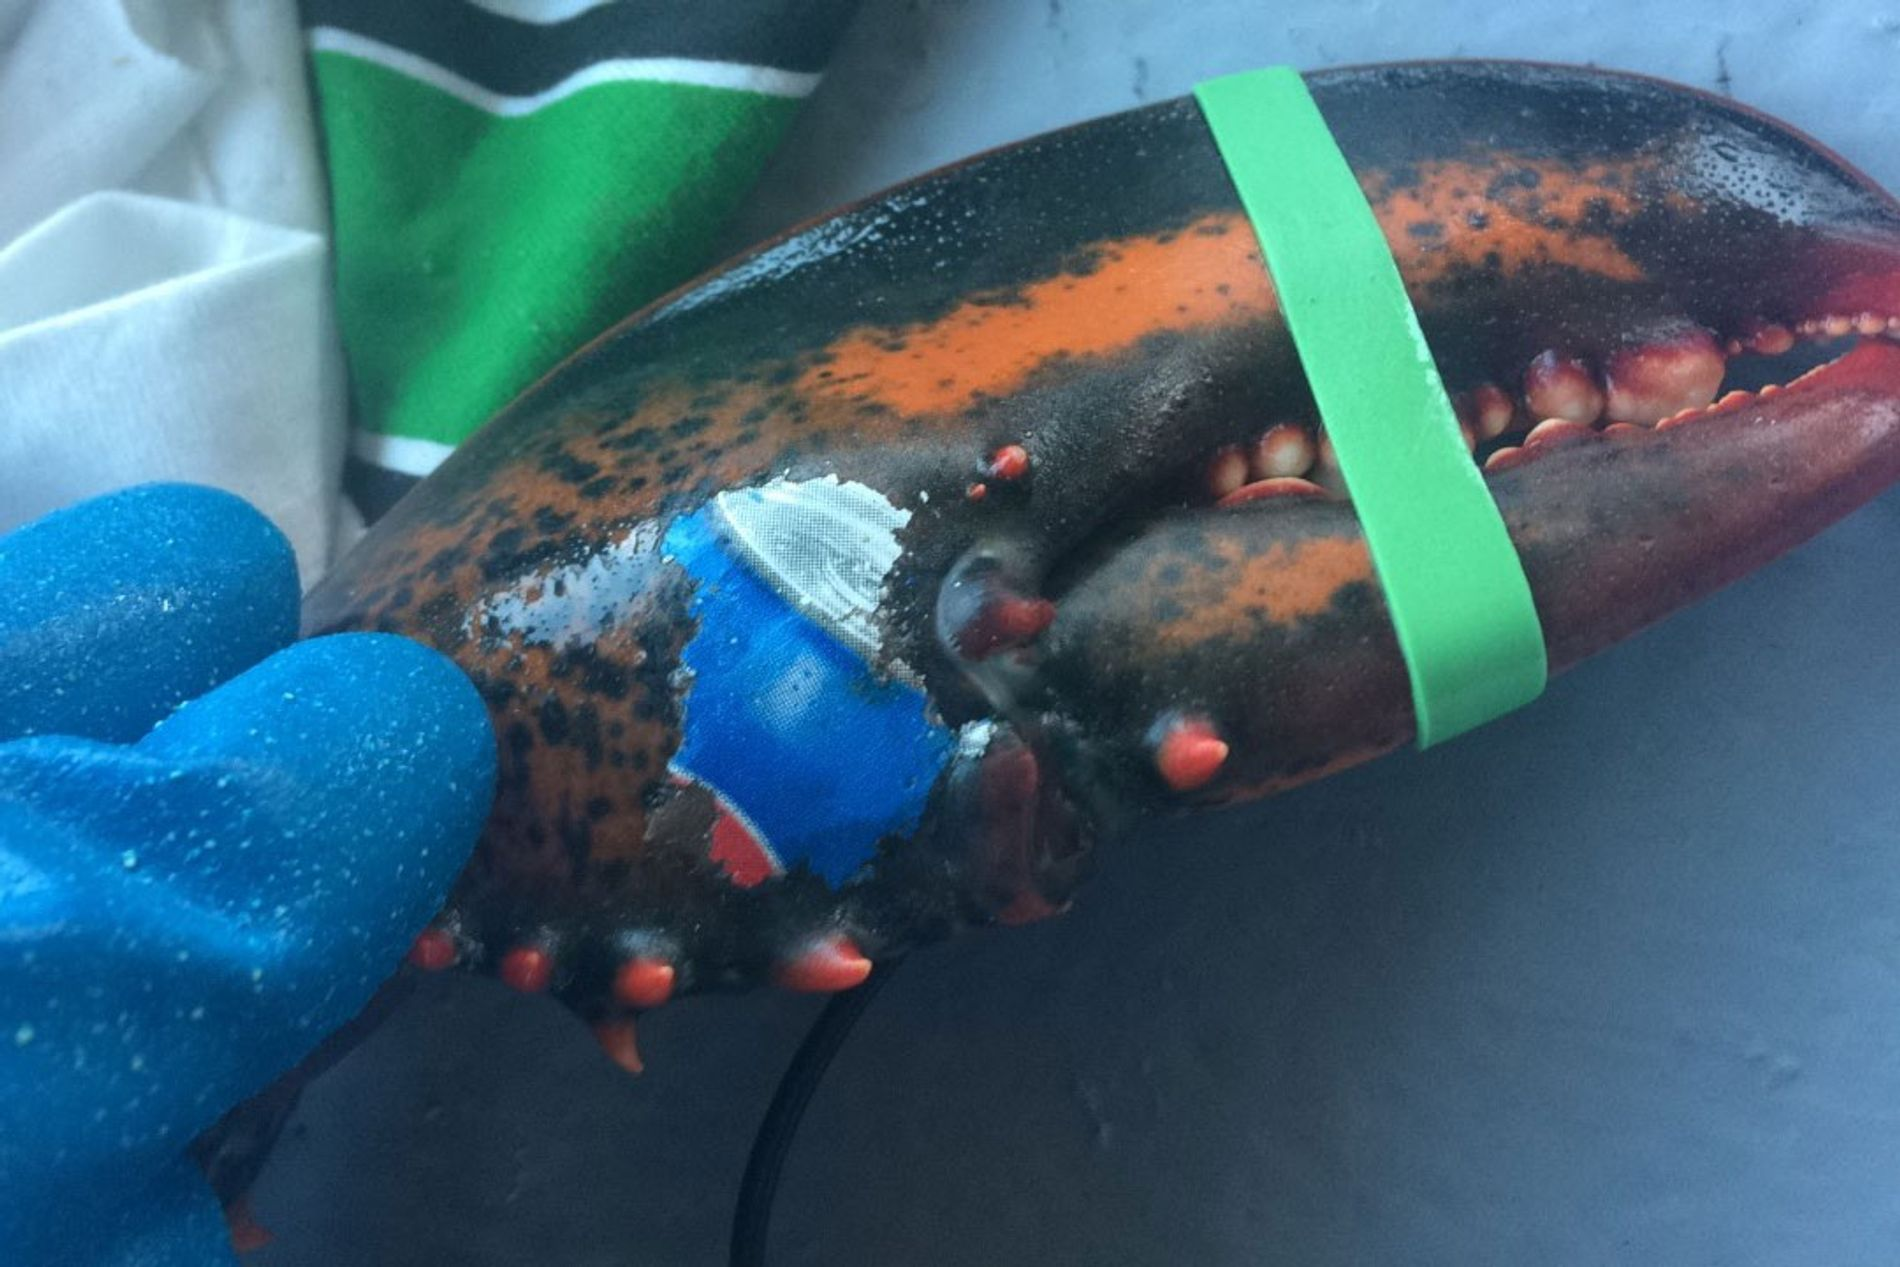 It's unclear how the image was printed onto the lobster's claw.